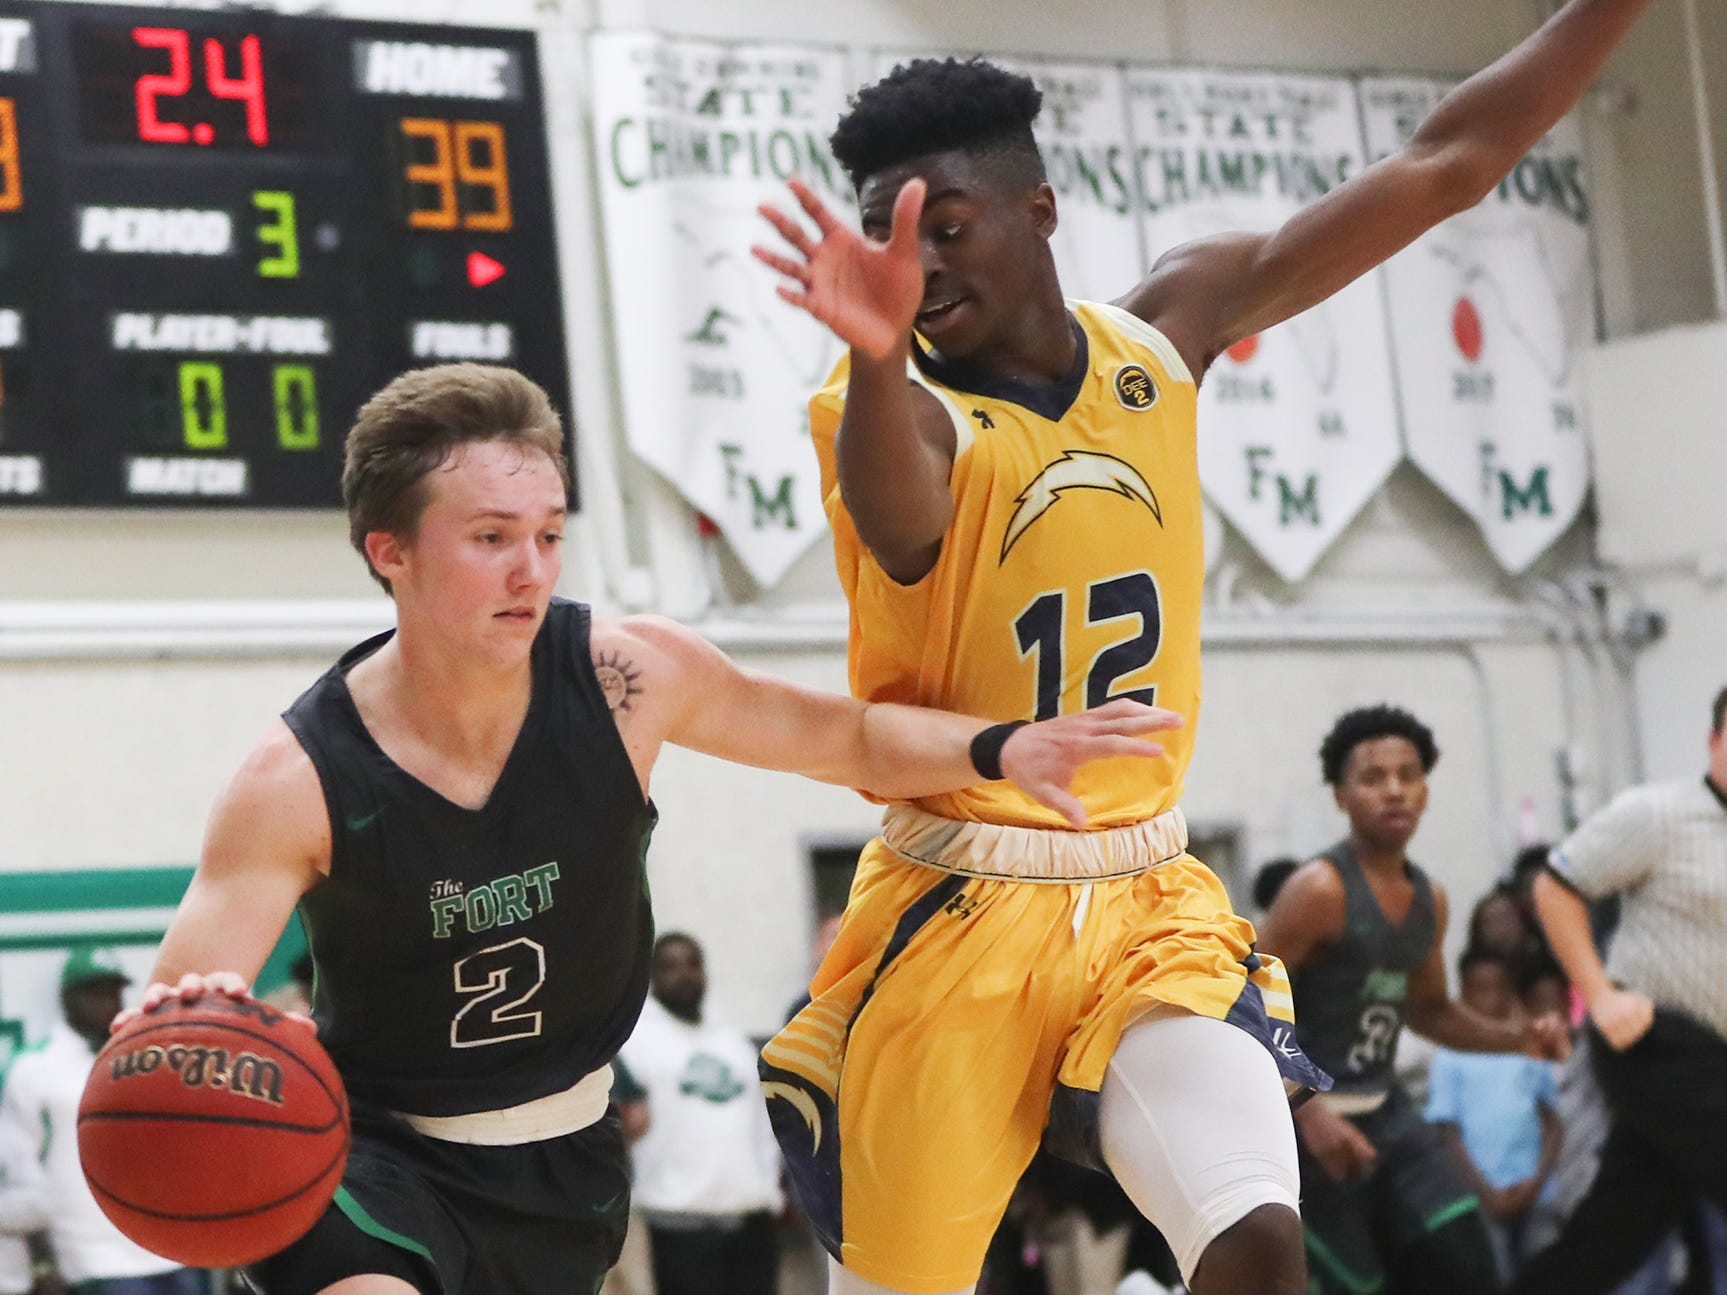 Fort Myers High School's Bradley Merilus, left, drives to the basket against Lehigh on Friday in the Class 7A-11 championship game in Fort Myers. Fort Myers beat Lehigh 59-56.